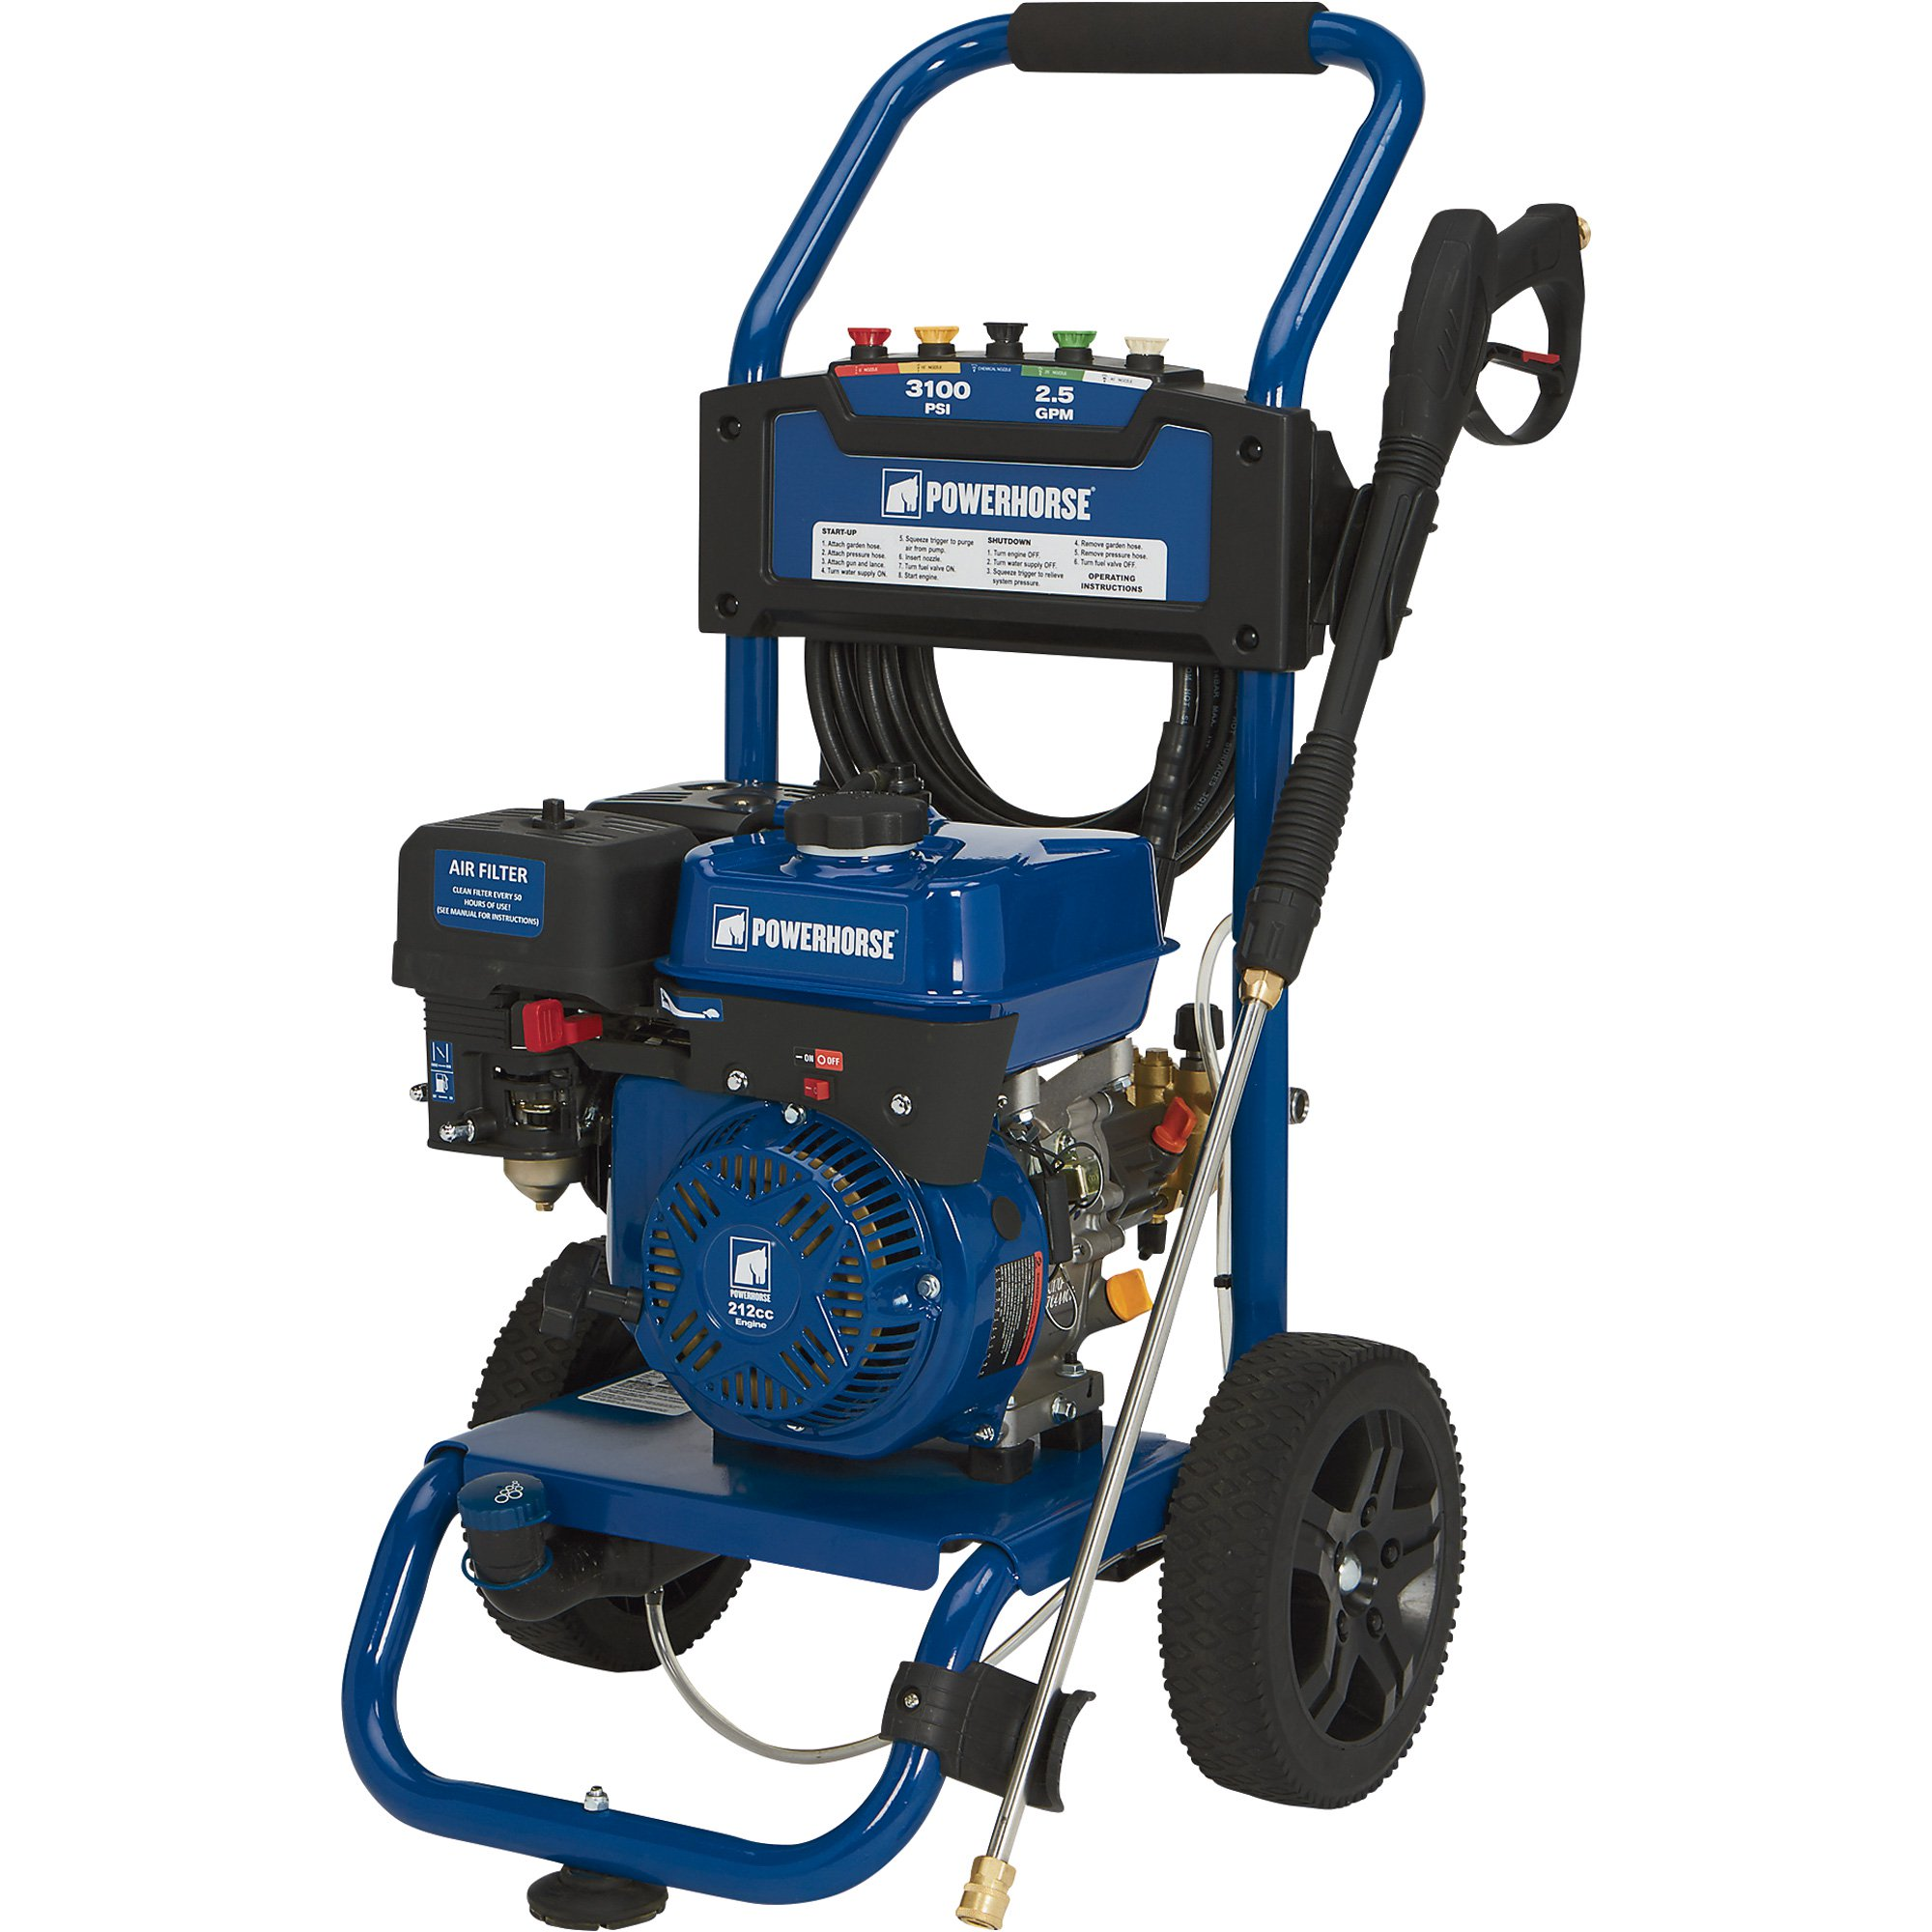 Powerhorse 750143 Gas Cold Water Pressure Washer - 3100 PSI 2.5 GPM EPA and CARB Compliant Freight Included